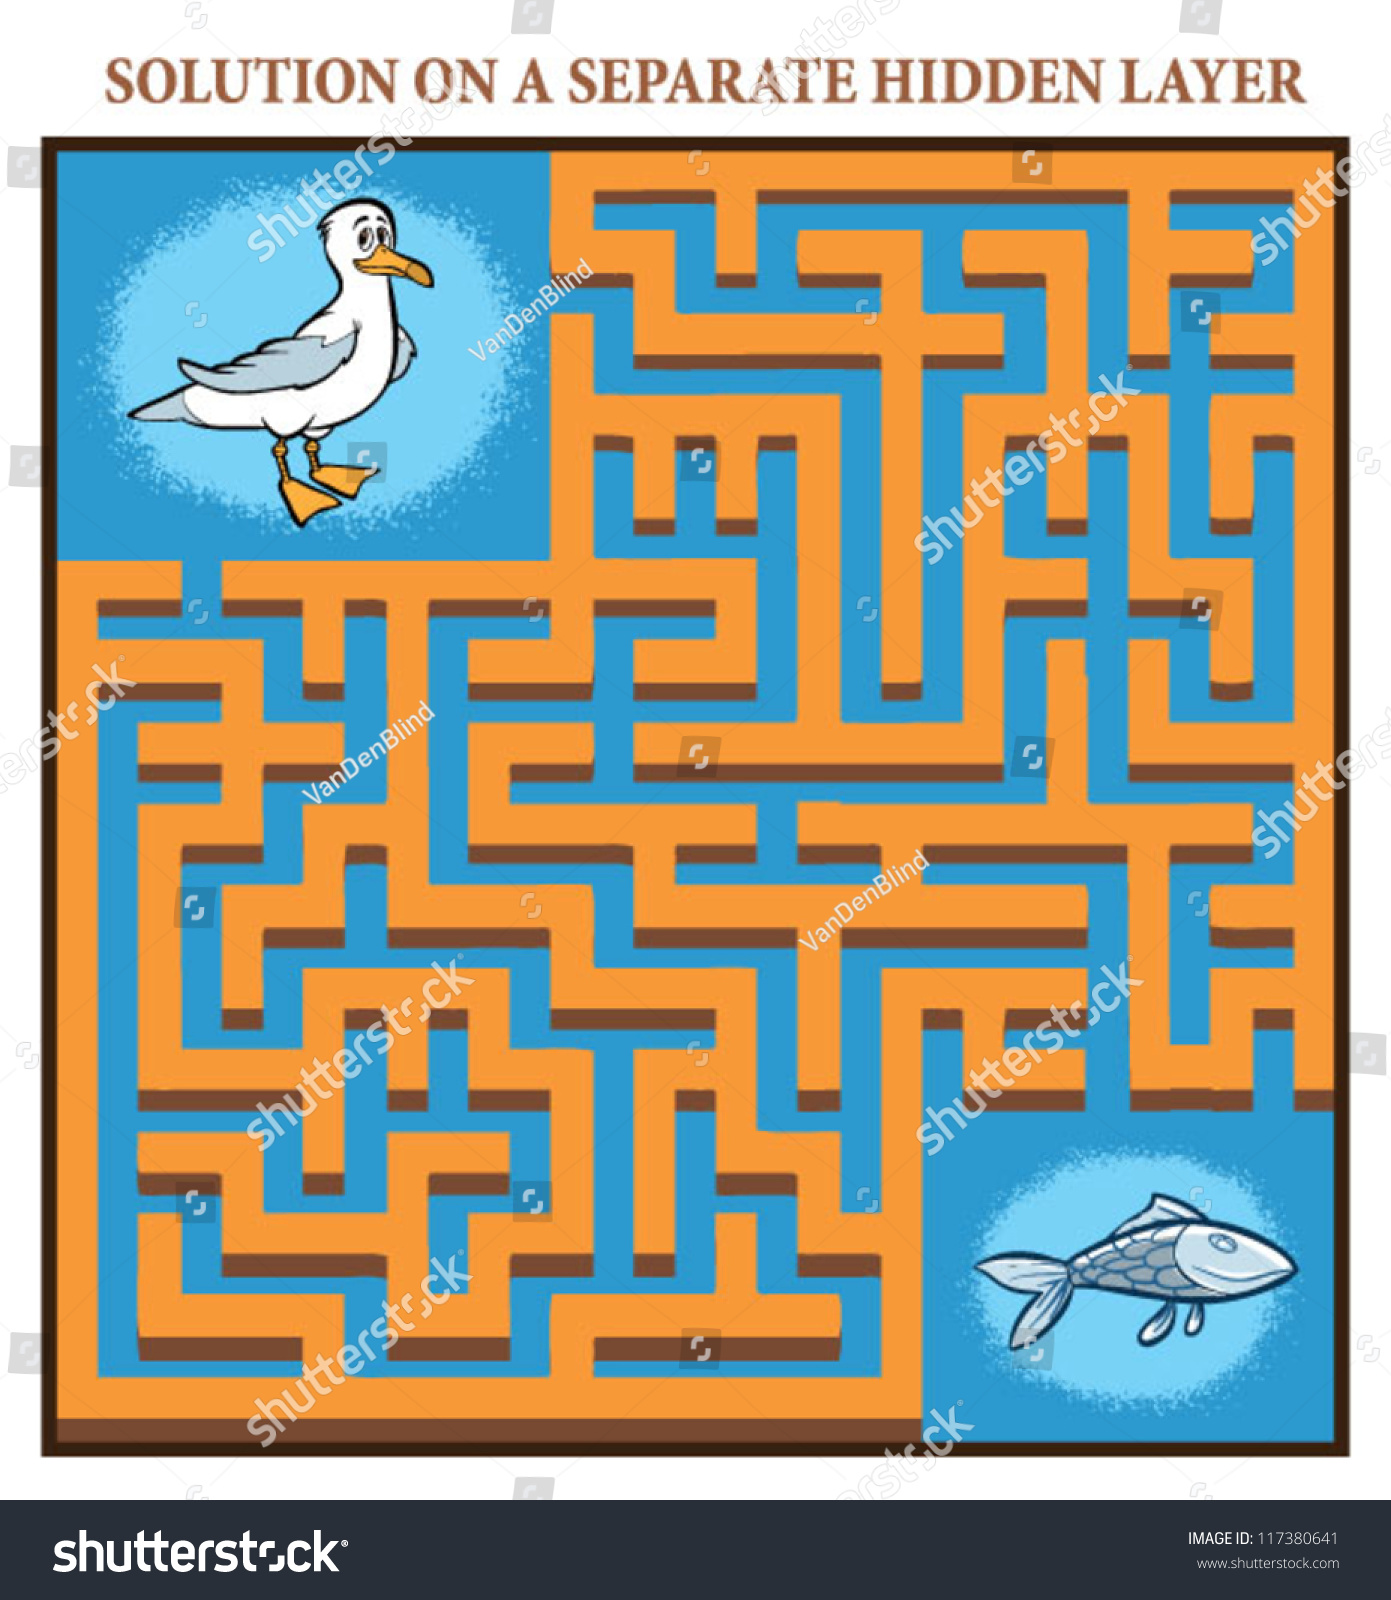 Seagulls Maze Game Help Hungry Seagull Stock Vector 117380641 ...